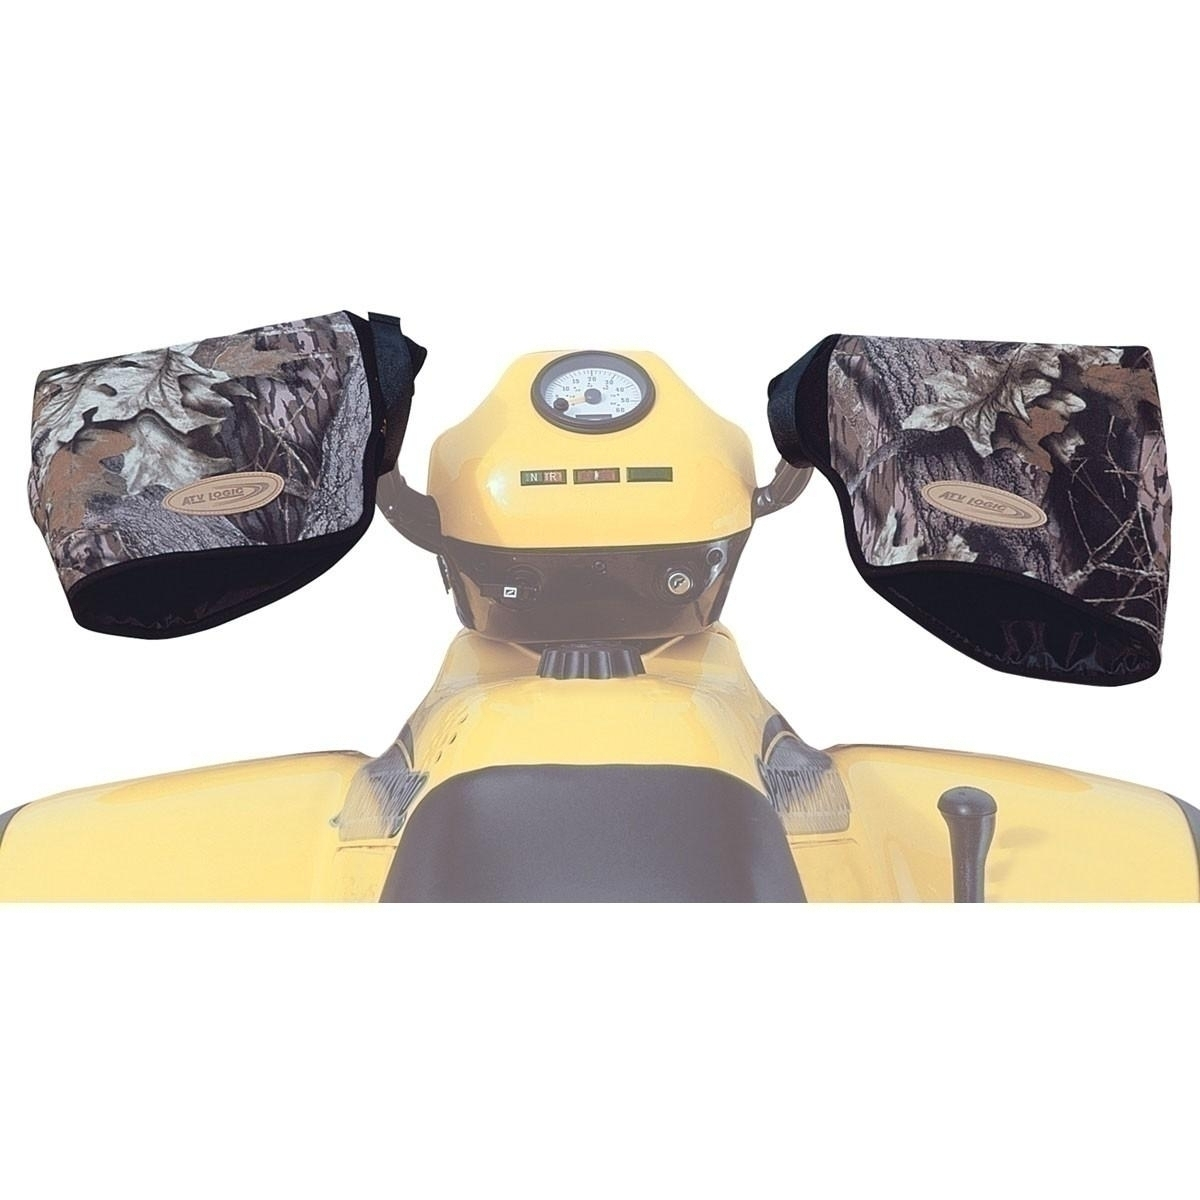 Boxing Gloves And Mitts - Atvm-mo - Atv Hand Protectors (mitts; Mossy Oak) ATVM-MO